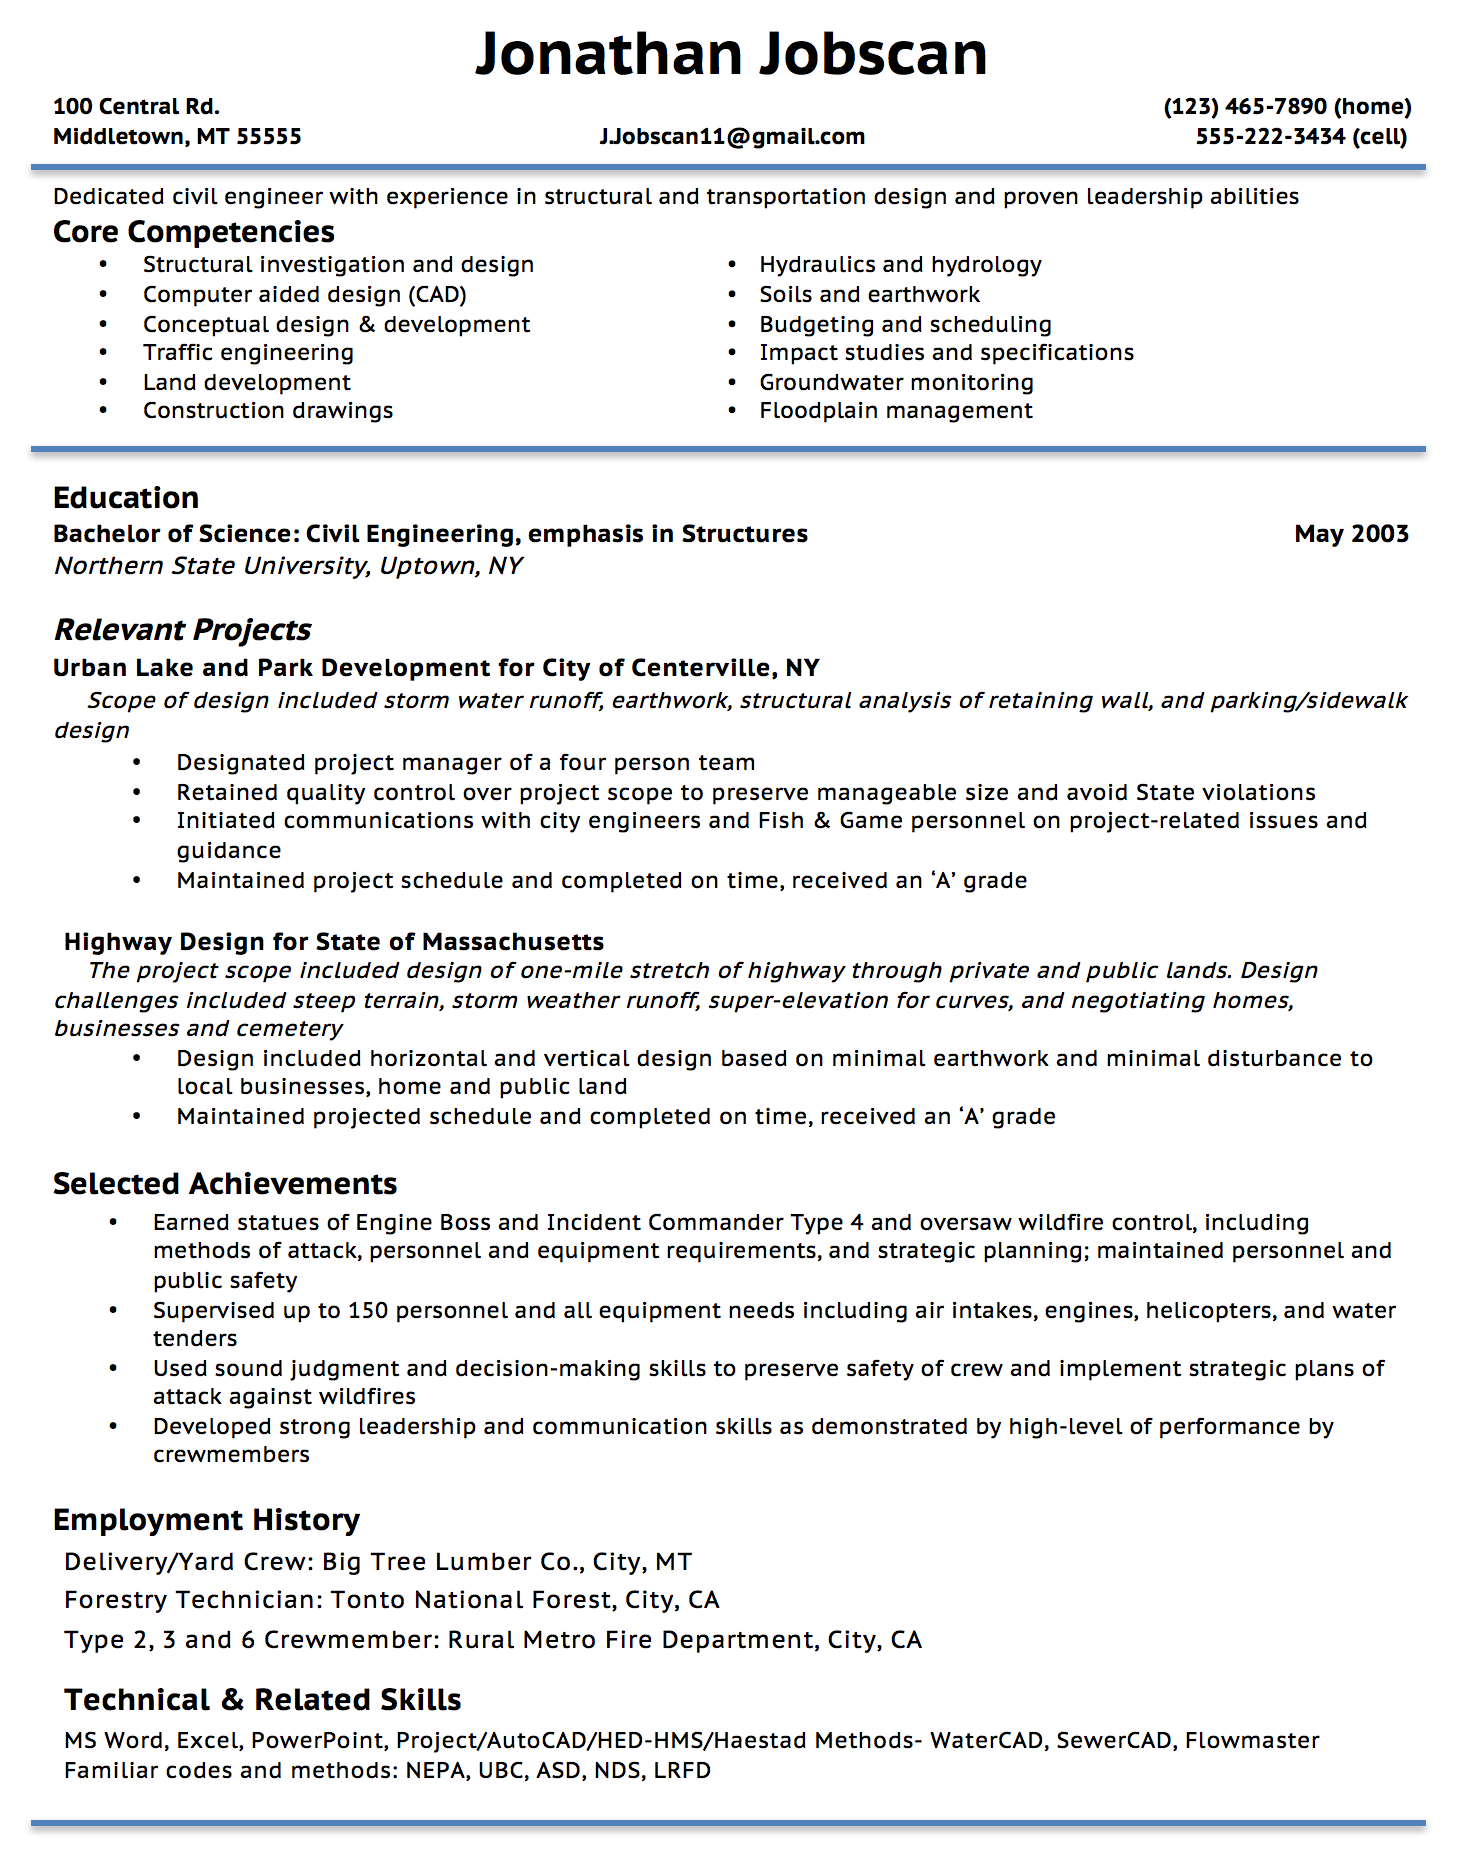 Opposenewapstandardsus  Picturesque Resume Writing Guide  Jobscan With Extraordinary Example Of A Functional Resume Format With Breathtaking Examples Of Functional Resumes Also How To Create A Great Resume In Addition How To Create A Cover Letter For A Resume And Resume Sales Associate As Well As Can A Resume Be Two Pages Additionally Resume Profile Summary From Jobscanco With Opposenewapstandardsus  Extraordinary Resume Writing Guide  Jobscan With Breathtaking Example Of A Functional Resume Format And Picturesque Examples Of Functional Resumes Also How To Create A Great Resume In Addition How To Create A Cover Letter For A Resume From Jobscanco